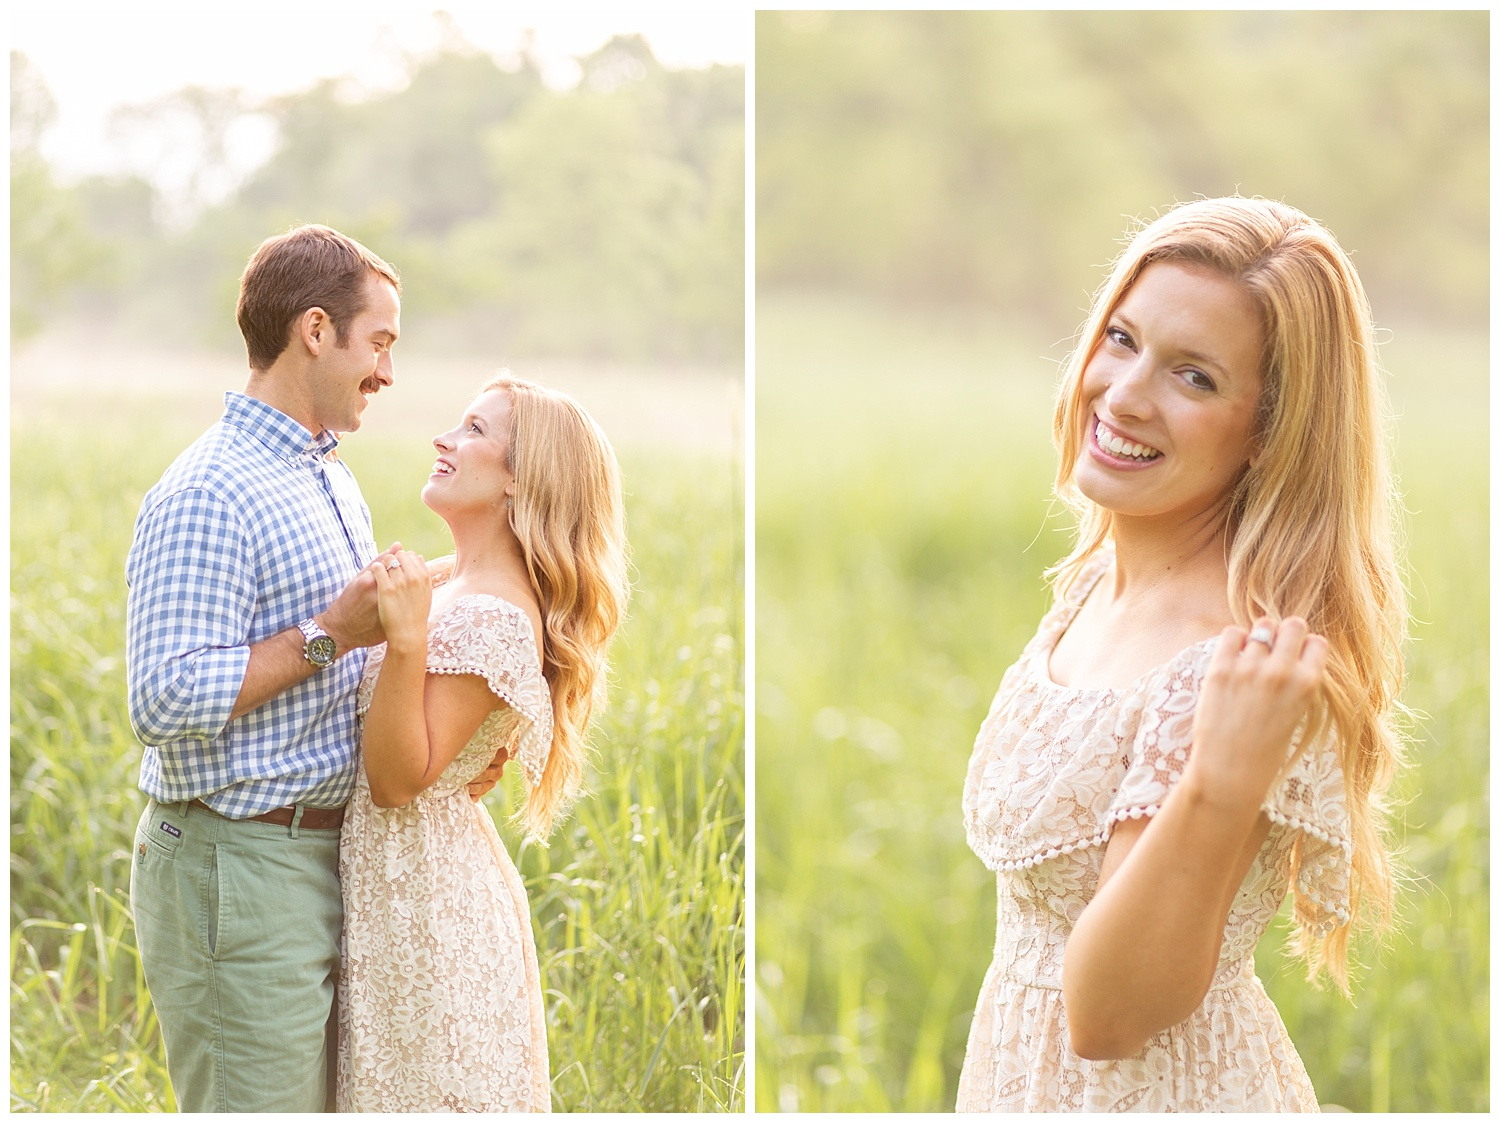 emily-belson-photography-spring-maryland-engagement-10.jpg